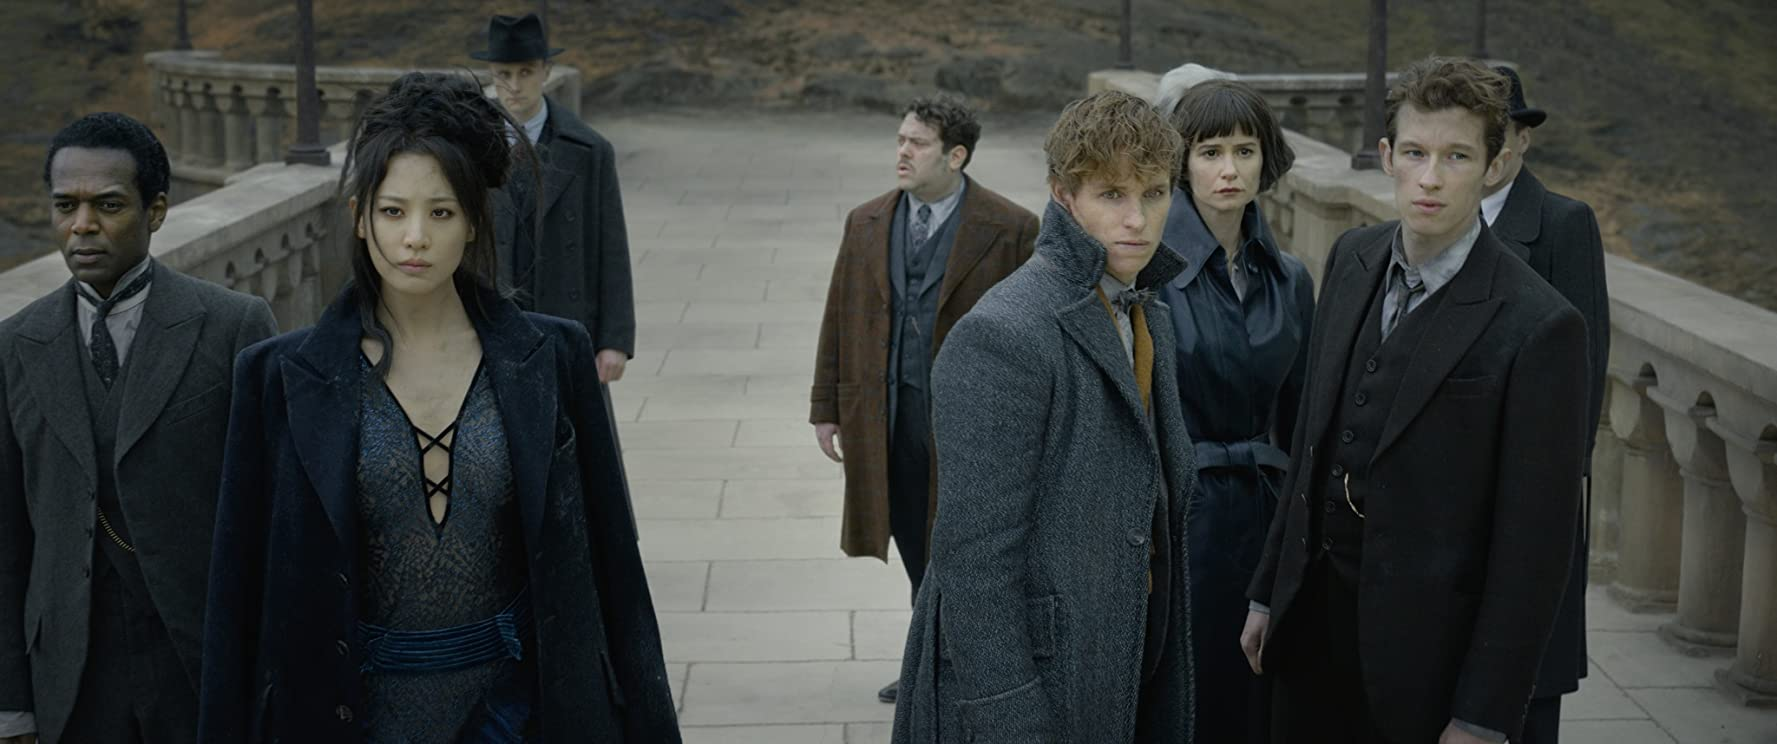 Dan Fogler, William Nadylam, Eddie Redmayne, Katherine Waterston, Claudia Kim, and Callum Turner in Fantastic Beasts: The Crimes of Grindelwald (2018)